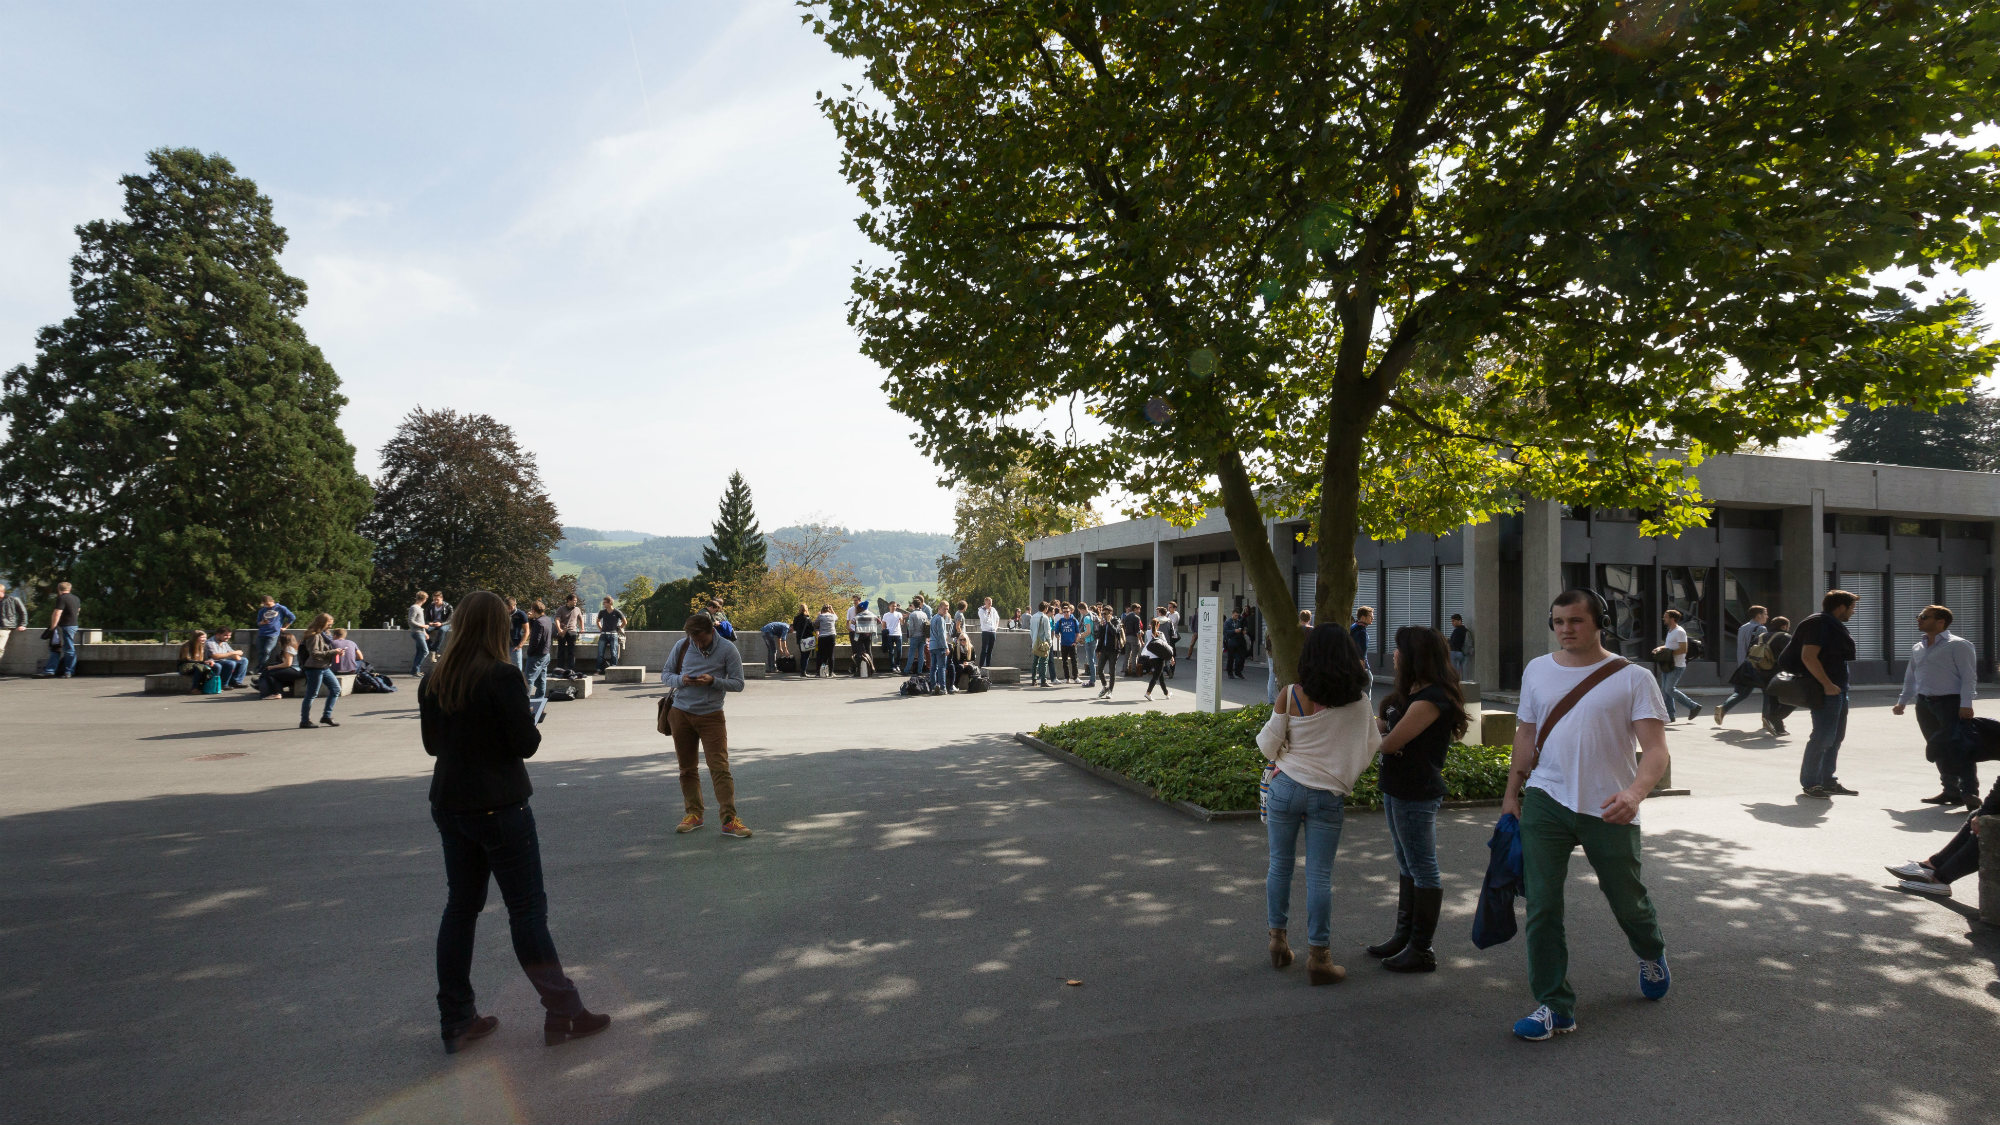 Students in front of the Aula of the University of St.Gallen (HSG)